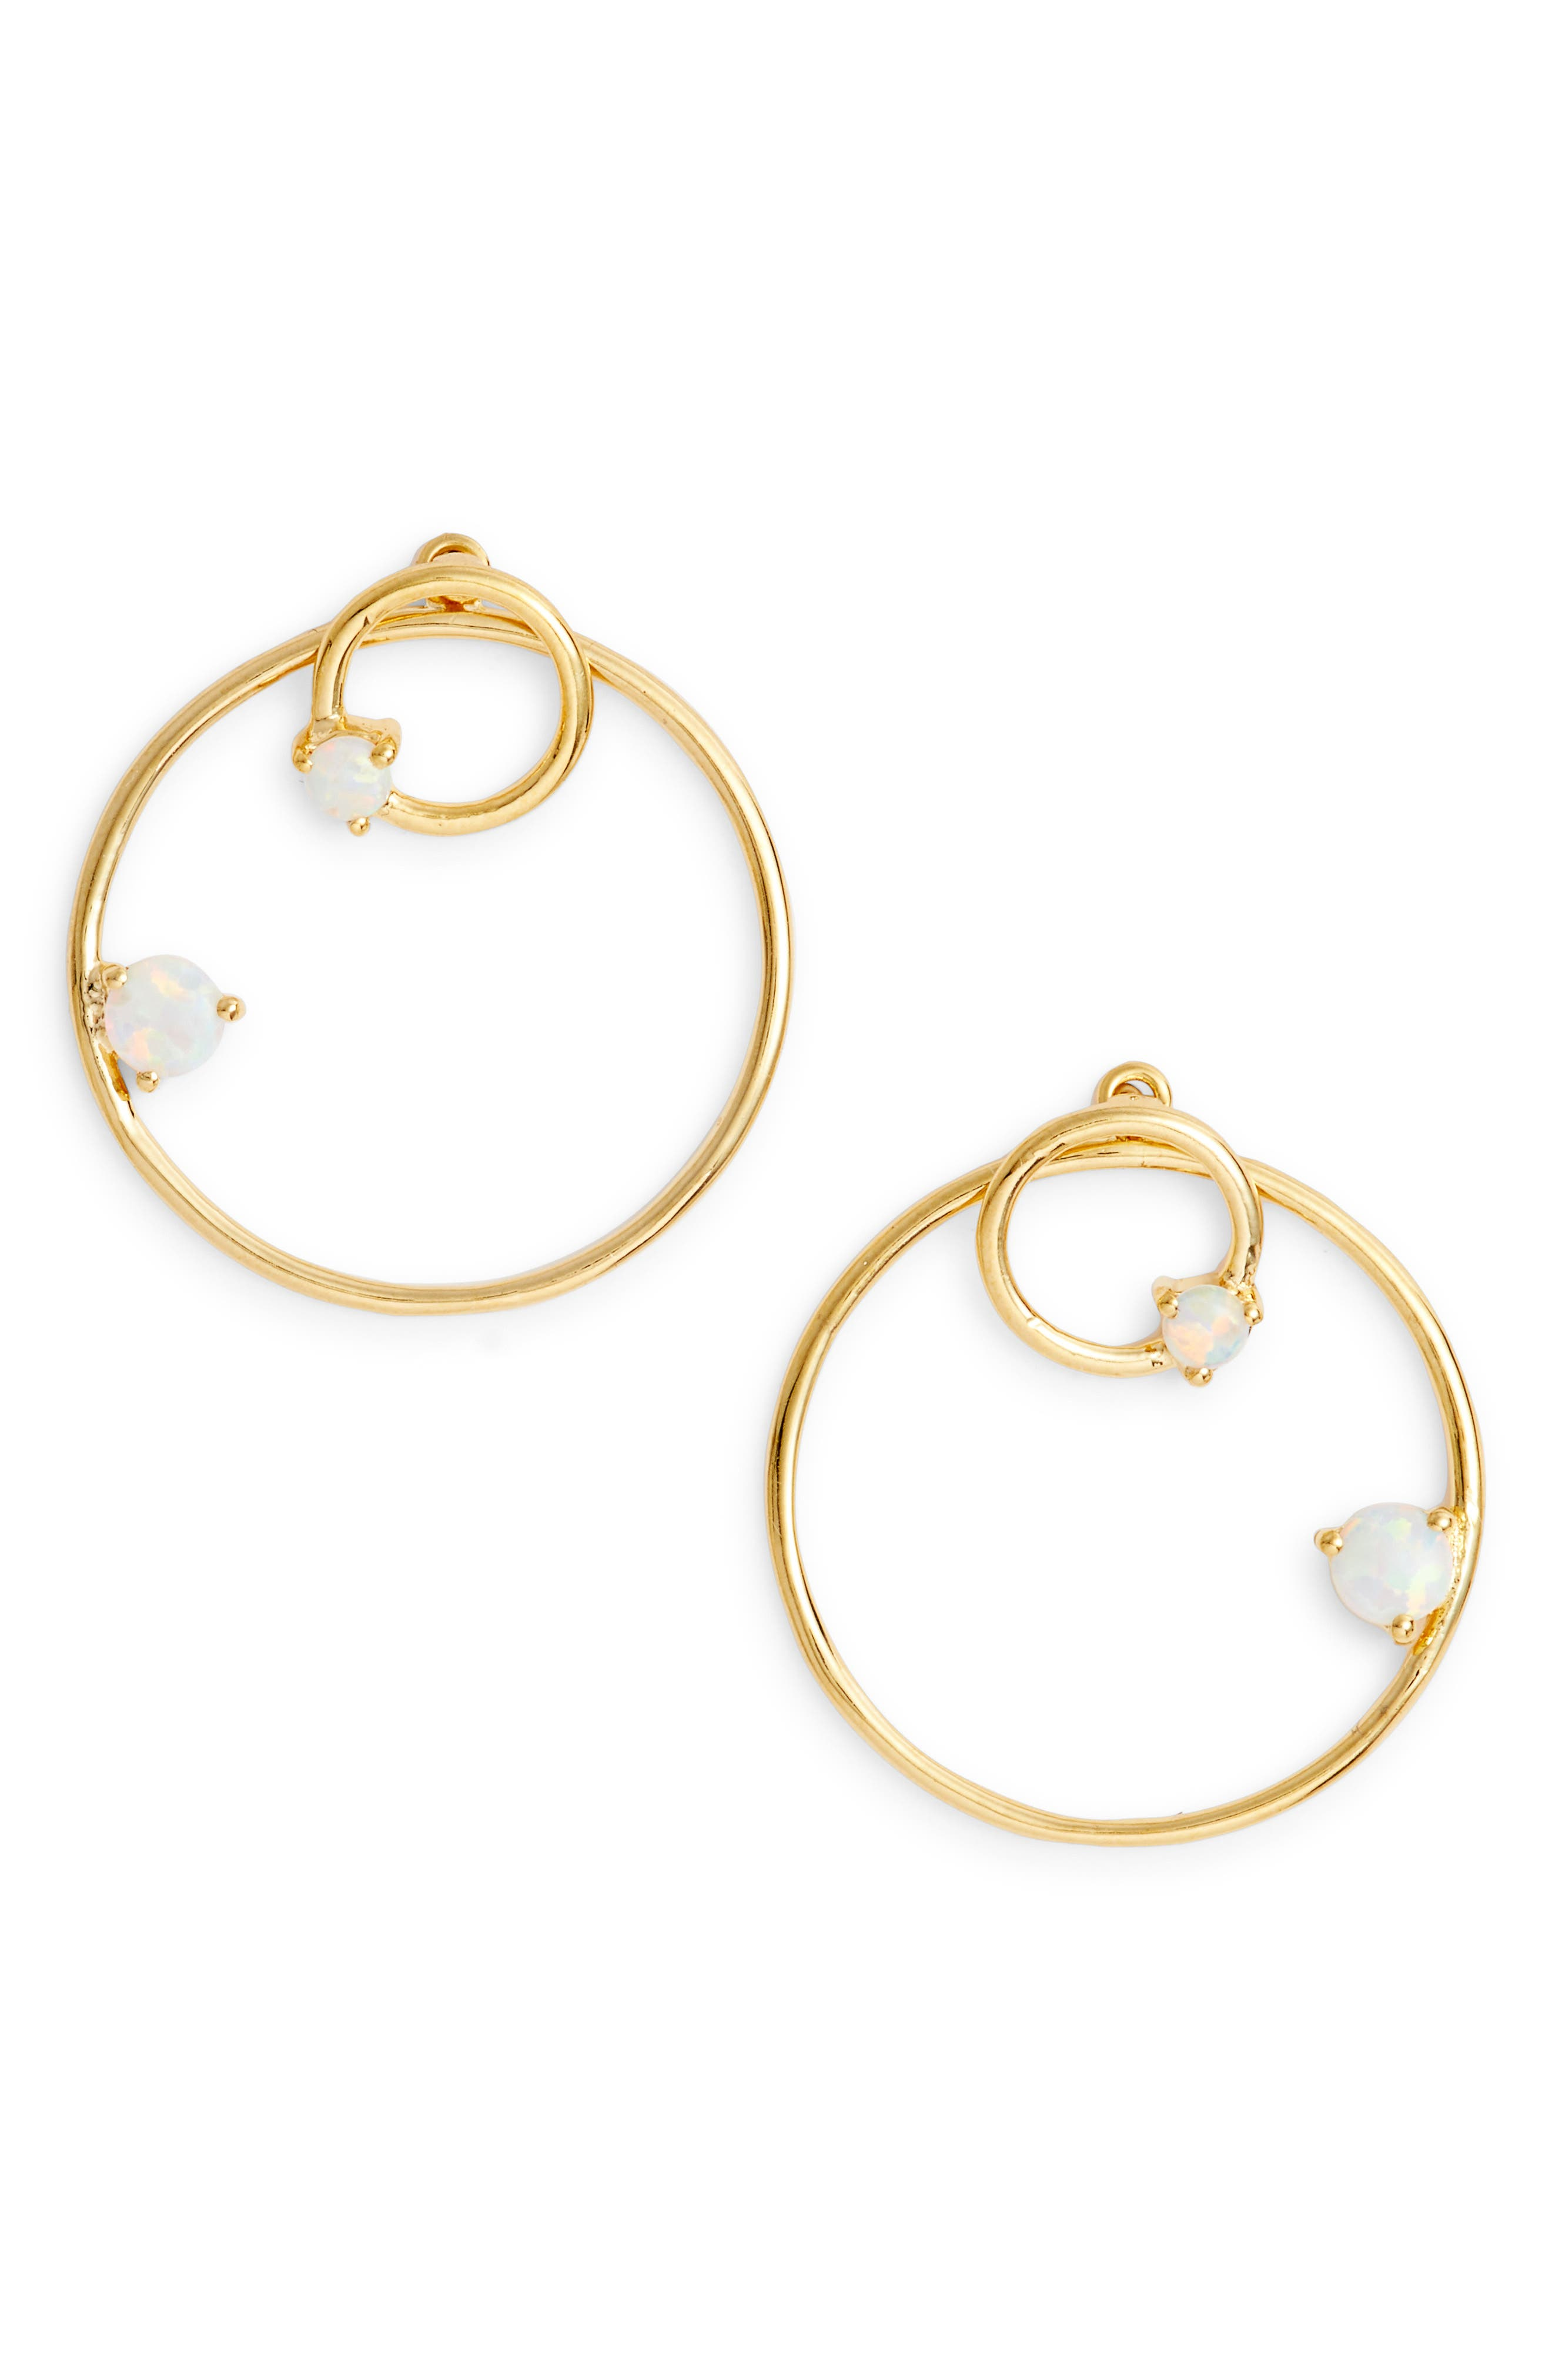 Sydney Double Open Ring Earrings,                             Main thumbnail 1, color,                             Gold